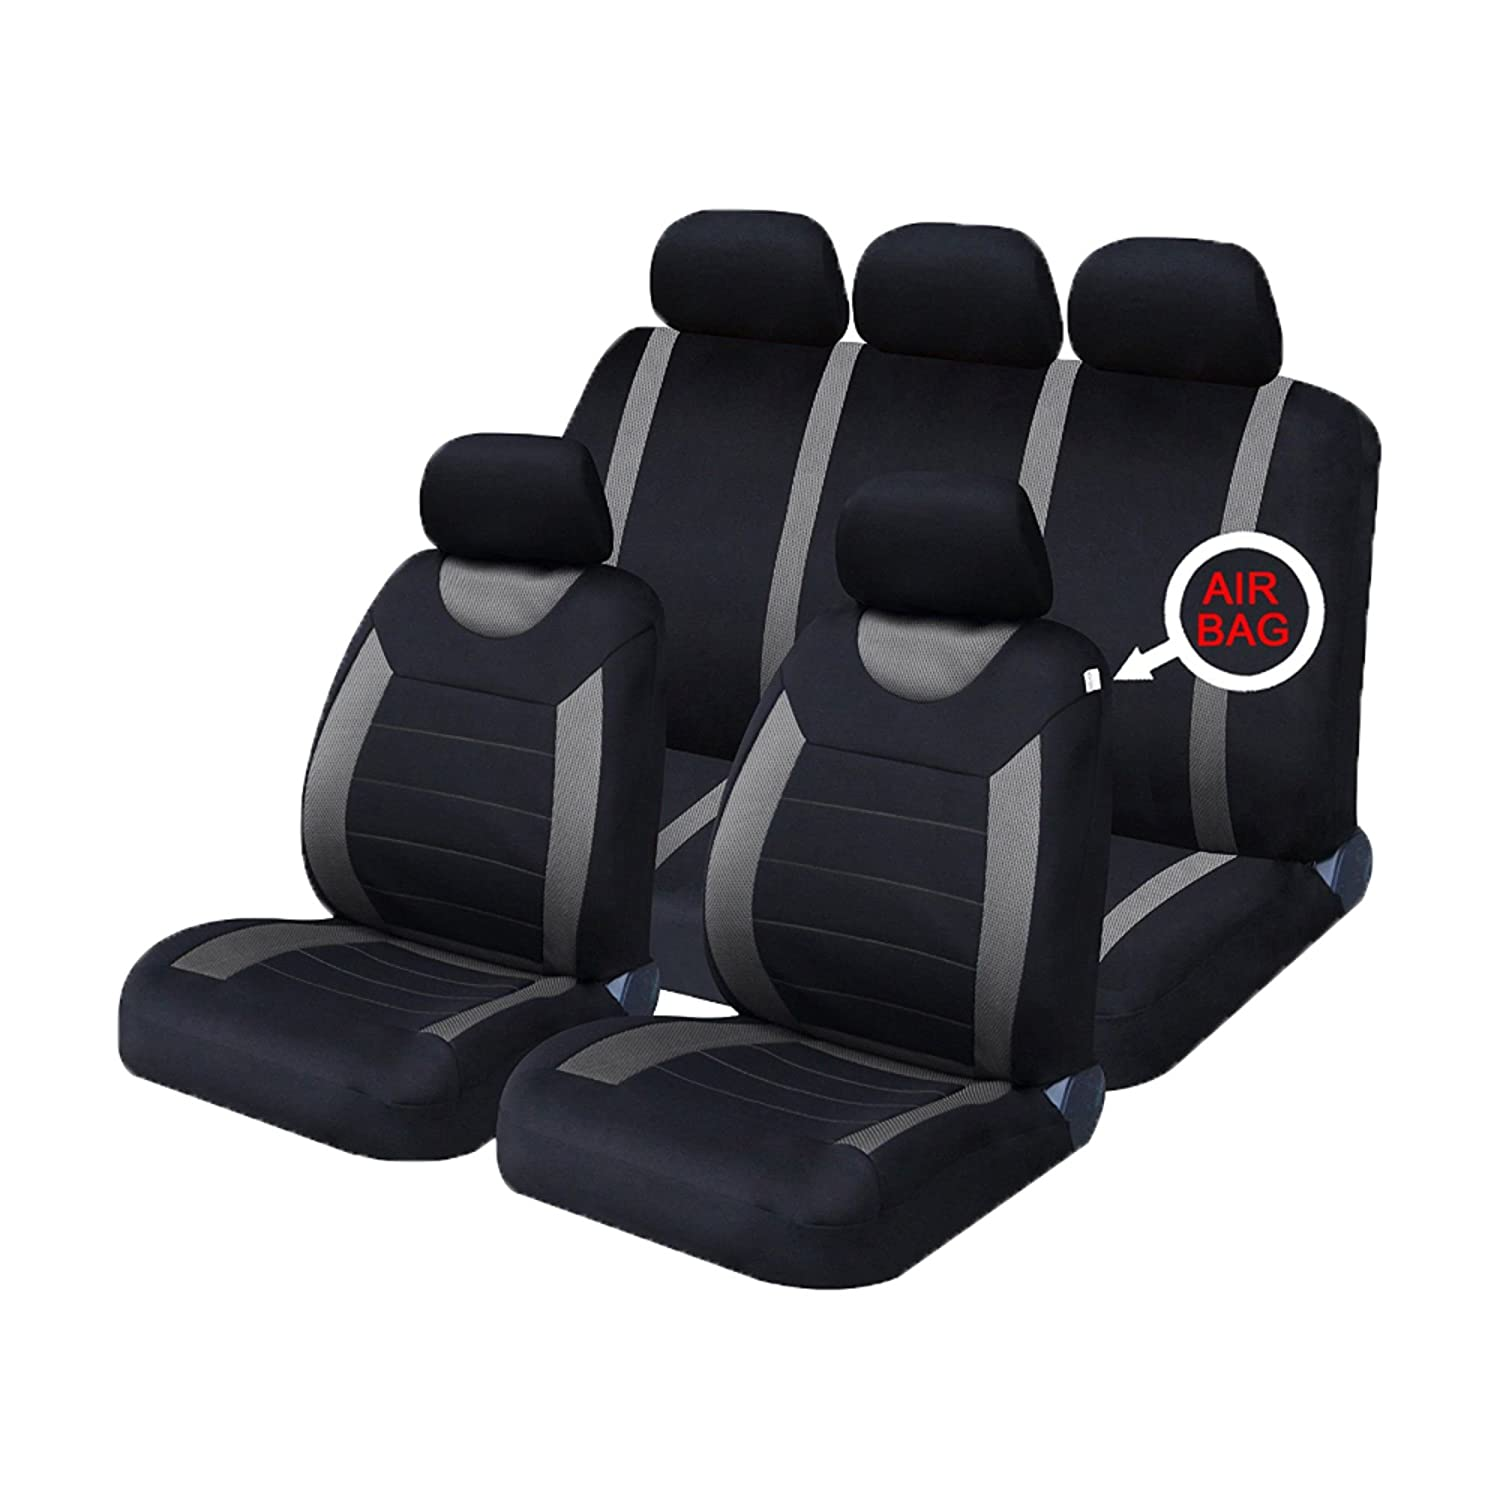 universal car seat covers full set sporty grey black washable airbag compatible ebay. Black Bedroom Furniture Sets. Home Design Ideas